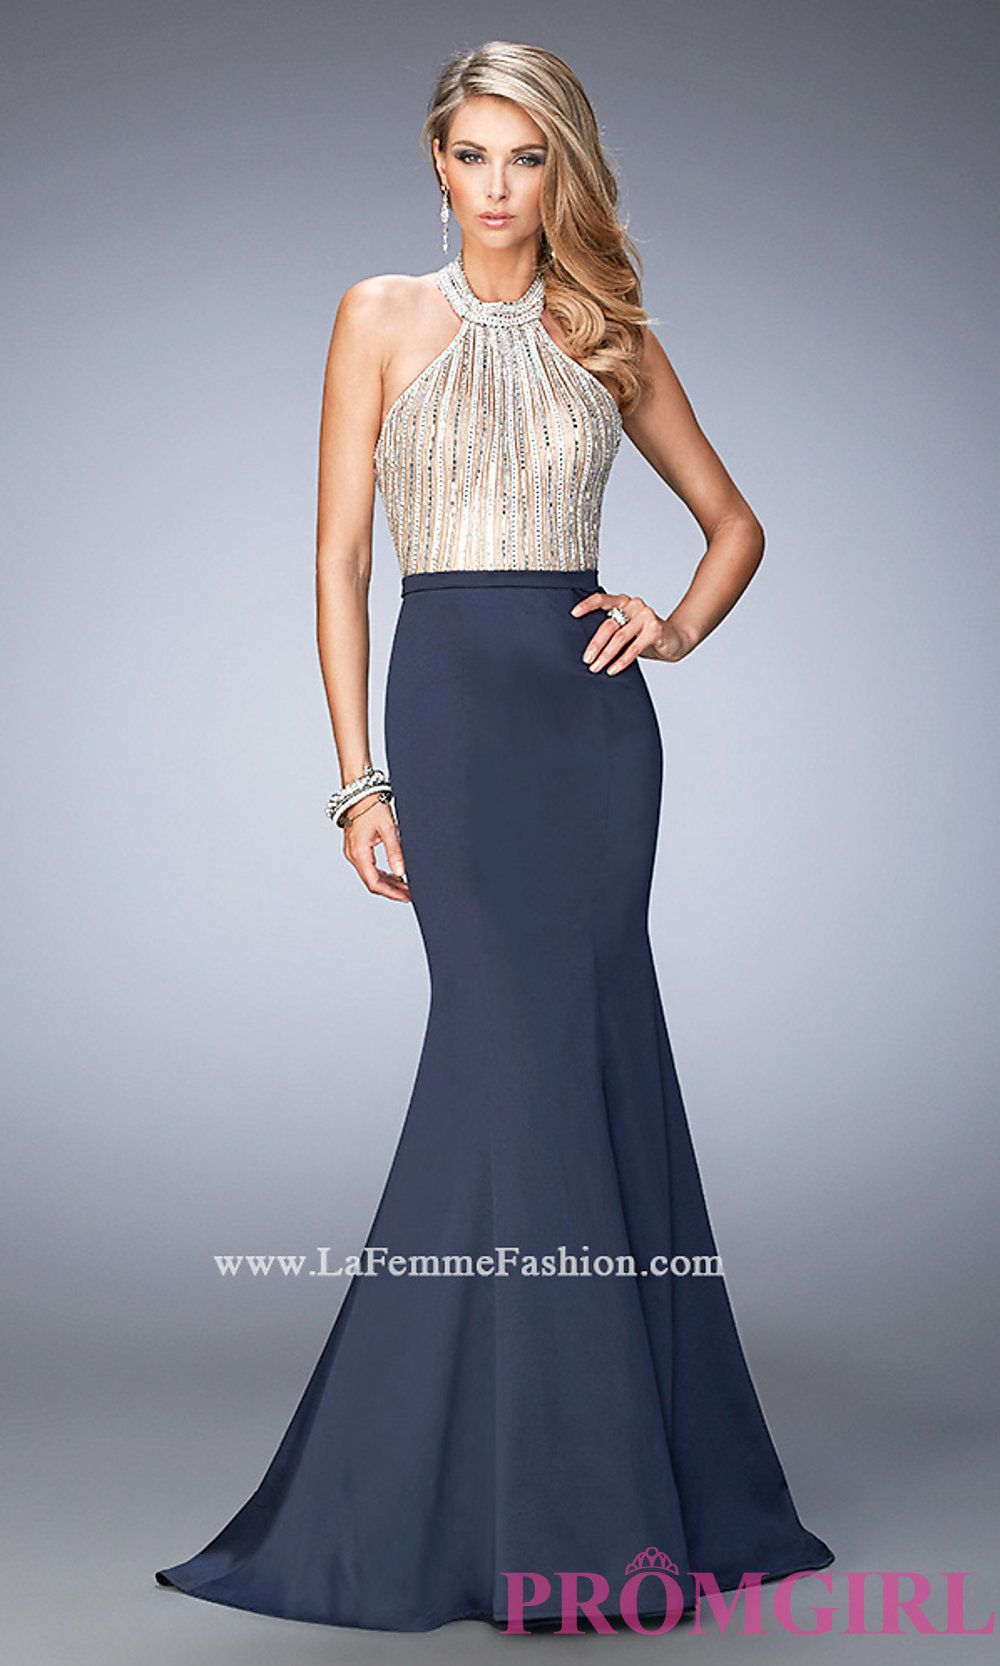 High Neck Halter Top Prom Dress by La Femme Style: LF-22177 | Prom ...